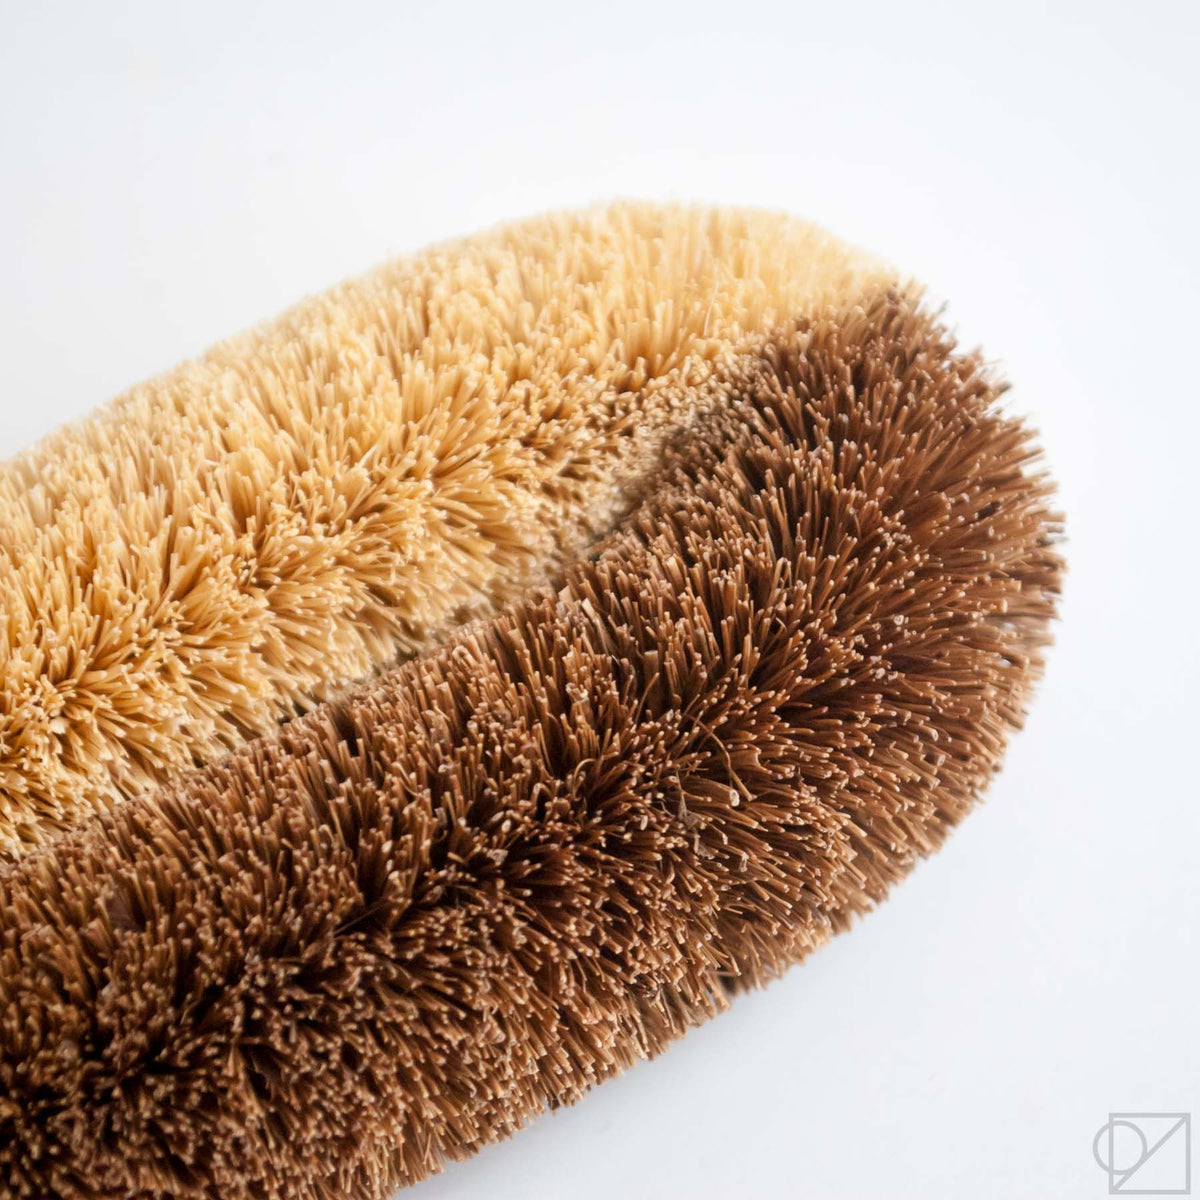 This scrub brush has half very stiff and half regular stiff palm fibers